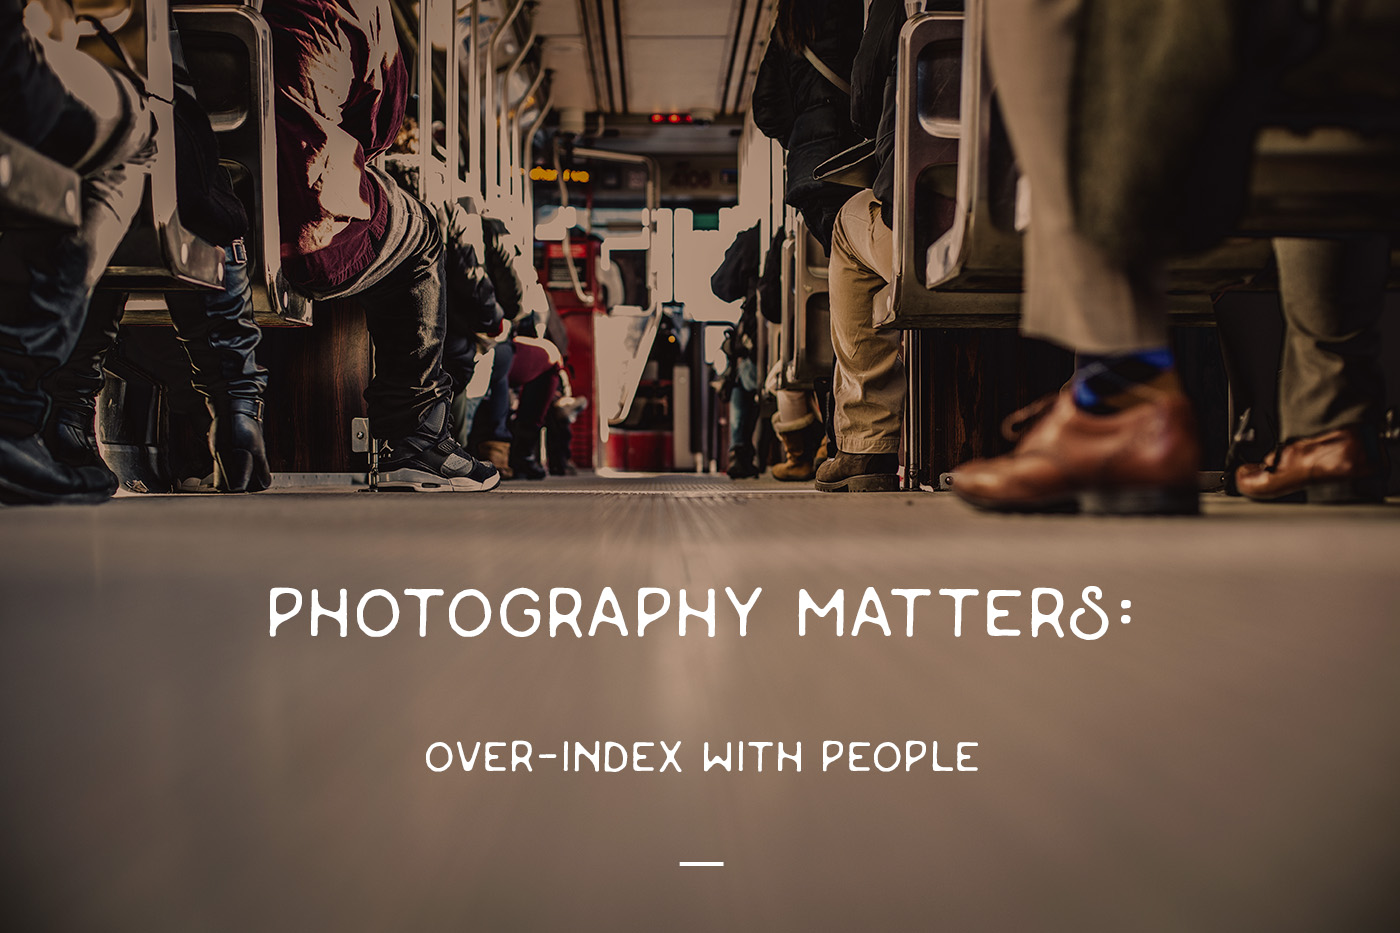 Photography Matters! Over-index with people in the images you use